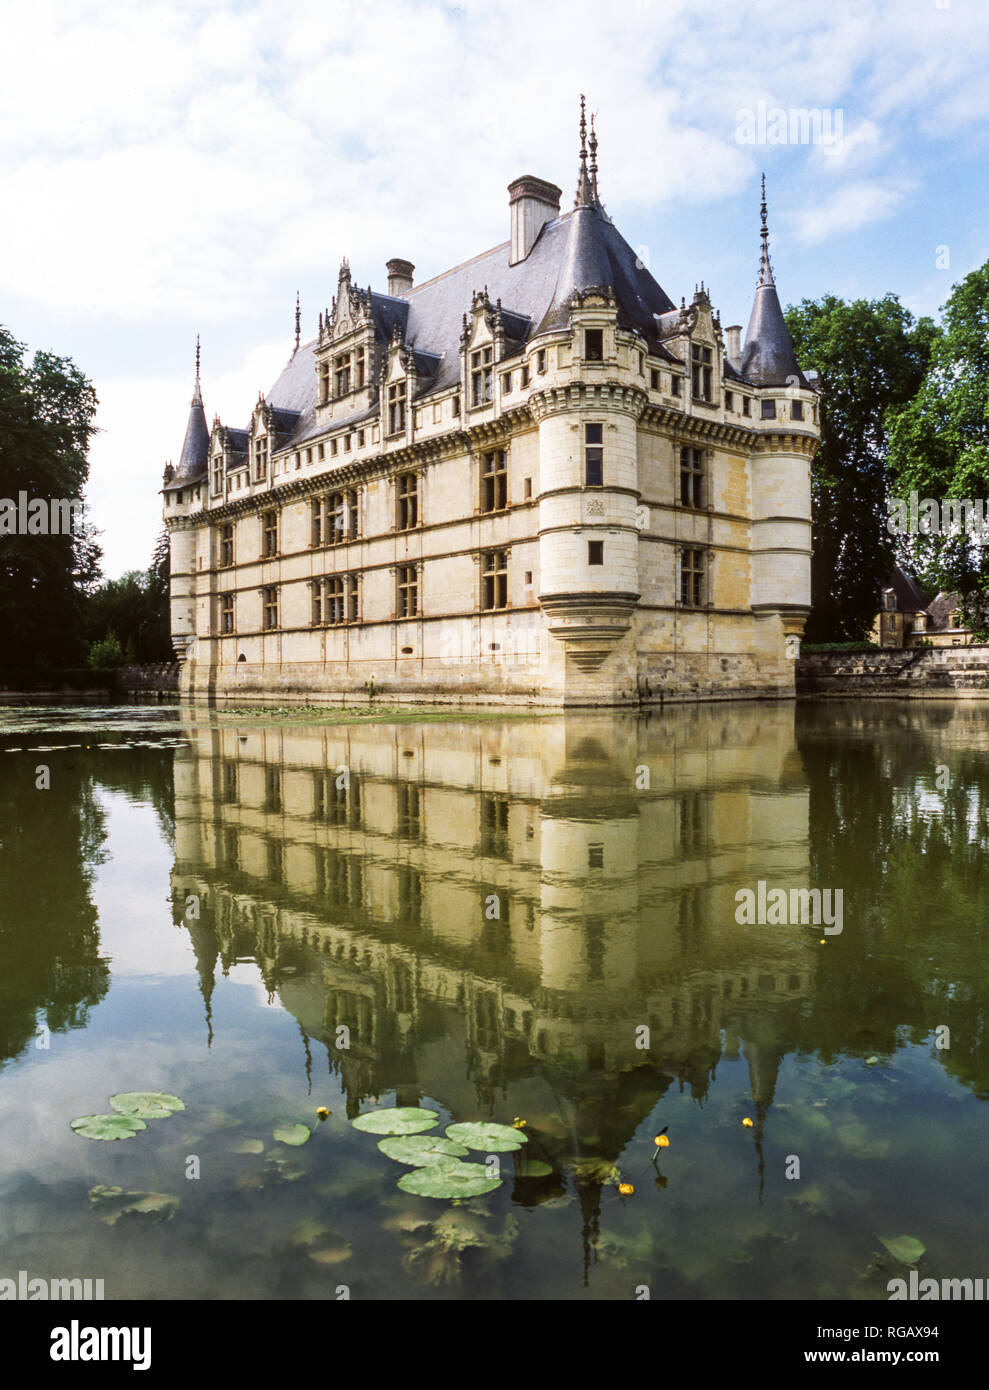 France.Loire Valley.The Chateau of Azay-le-Rideau (1528) - Stock Image